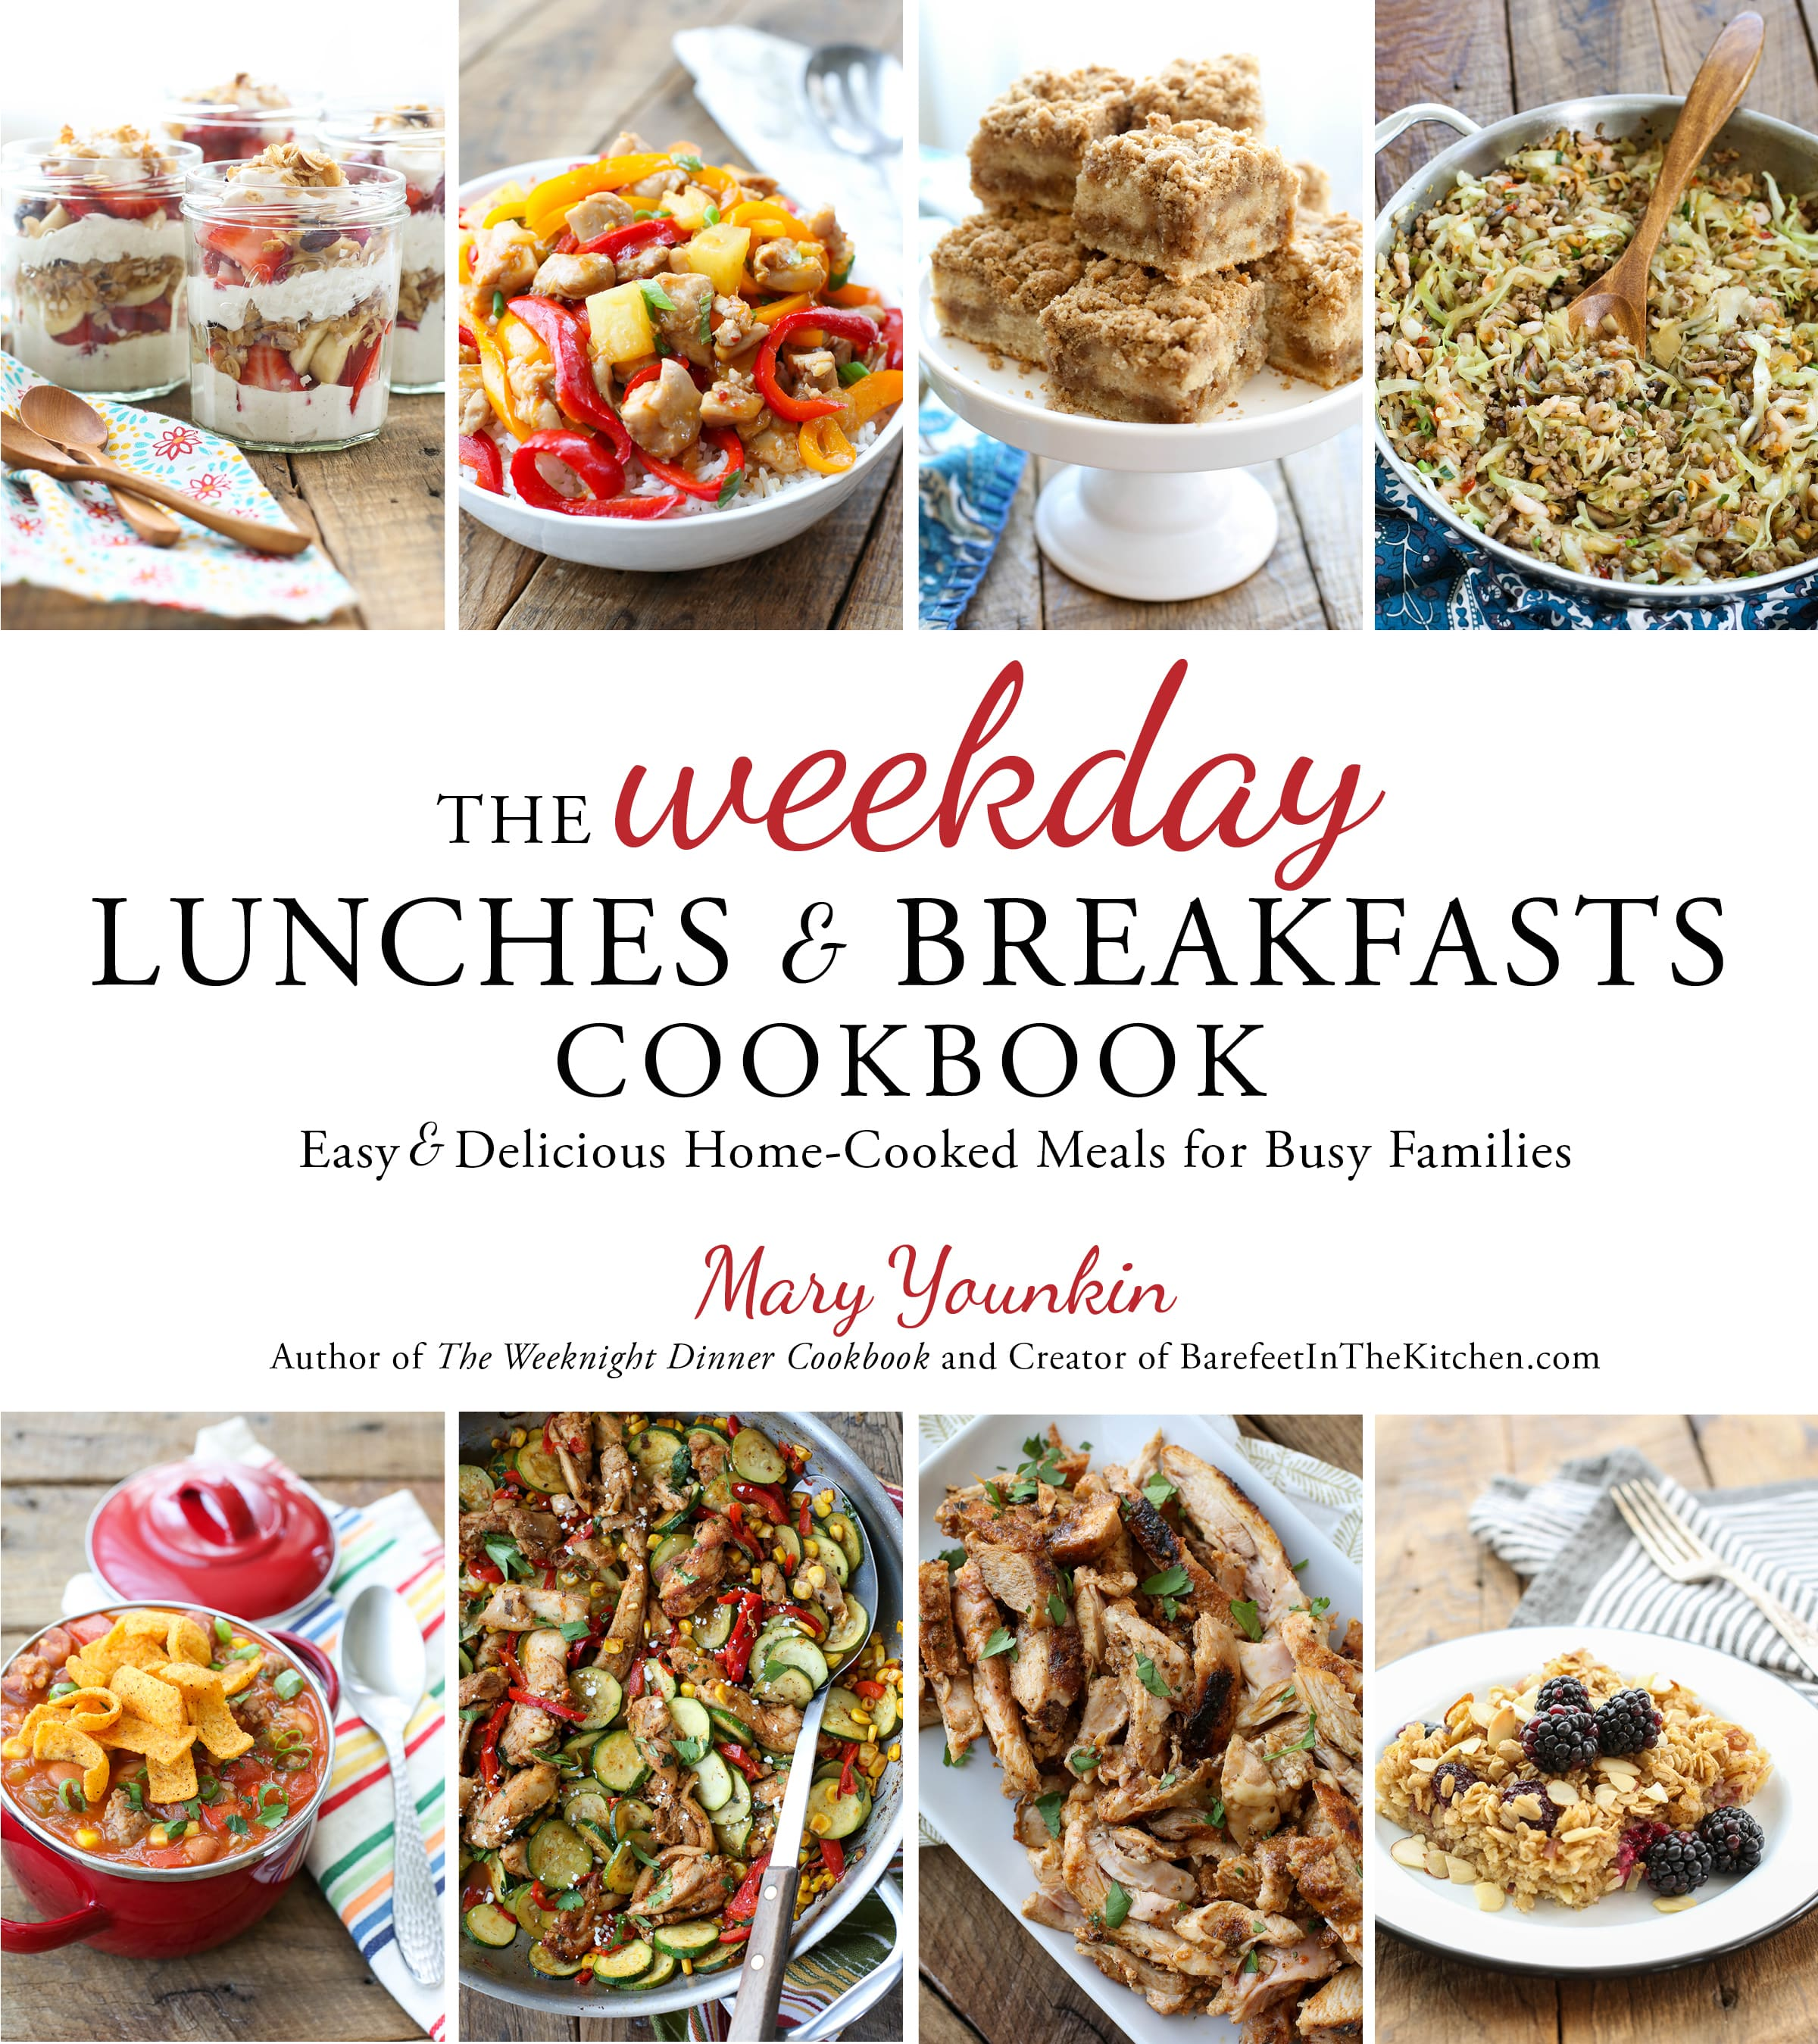 Order your copy of The Weekday Lunches & Breakfasts Cookbook now!